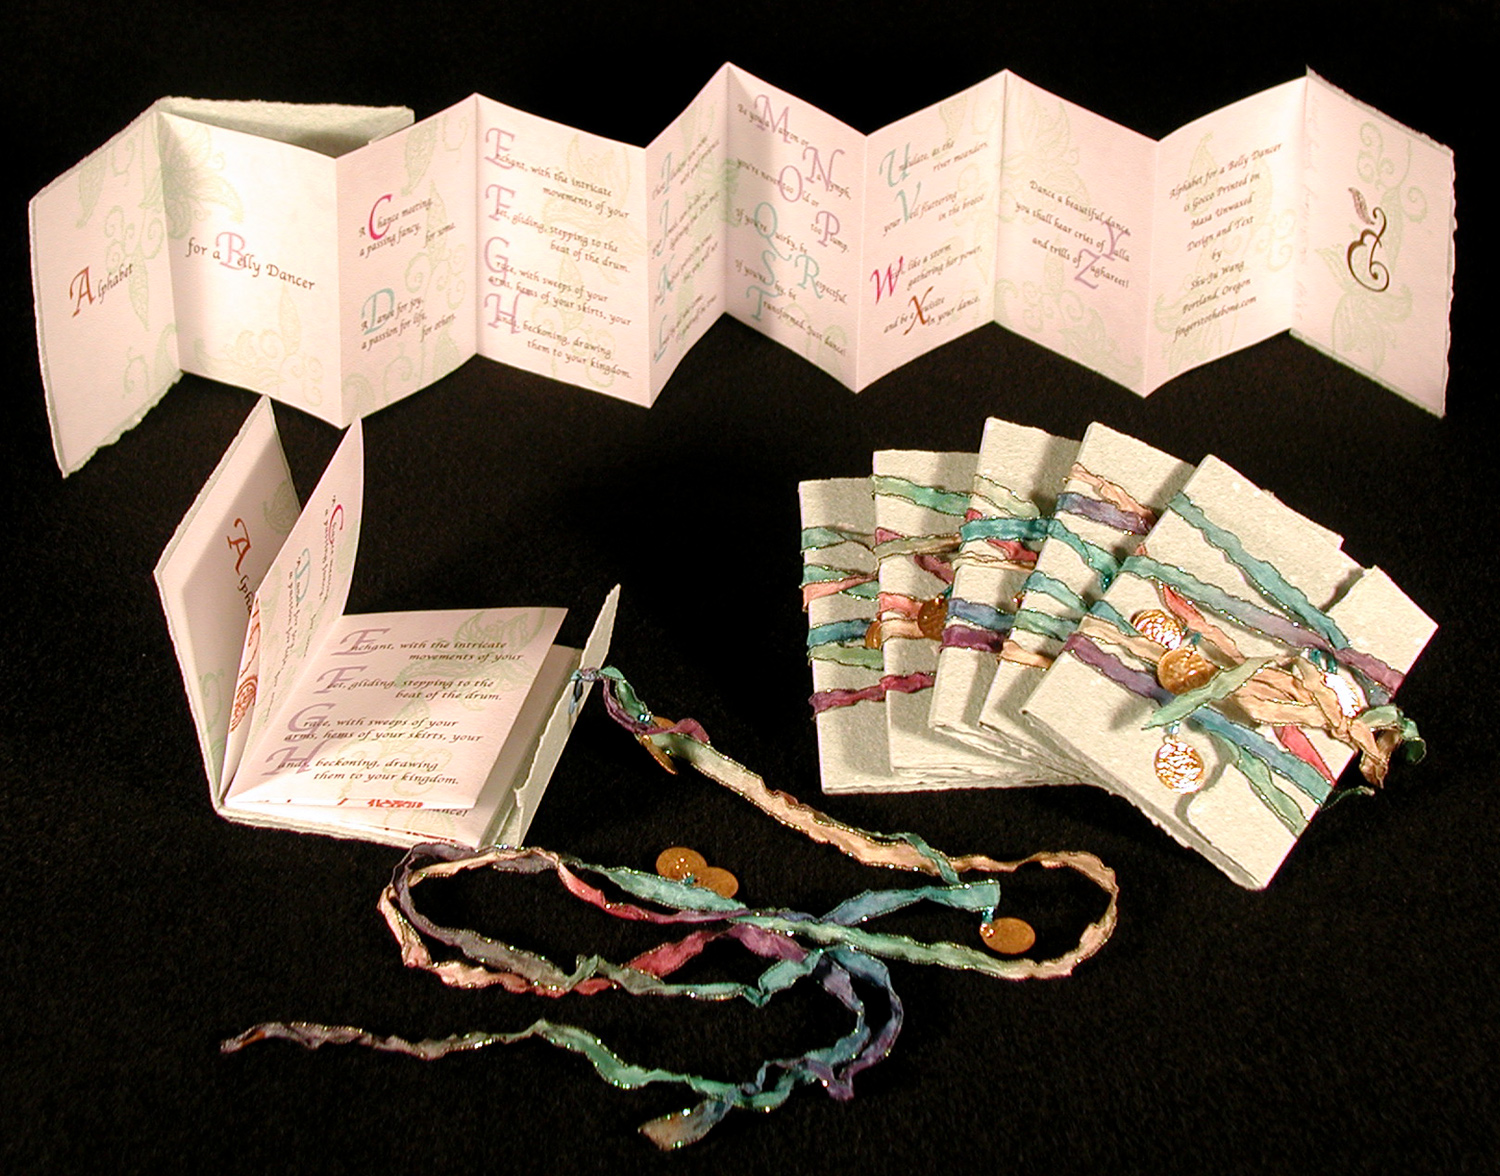 Image shows multiple copies of the book, closed & opened.